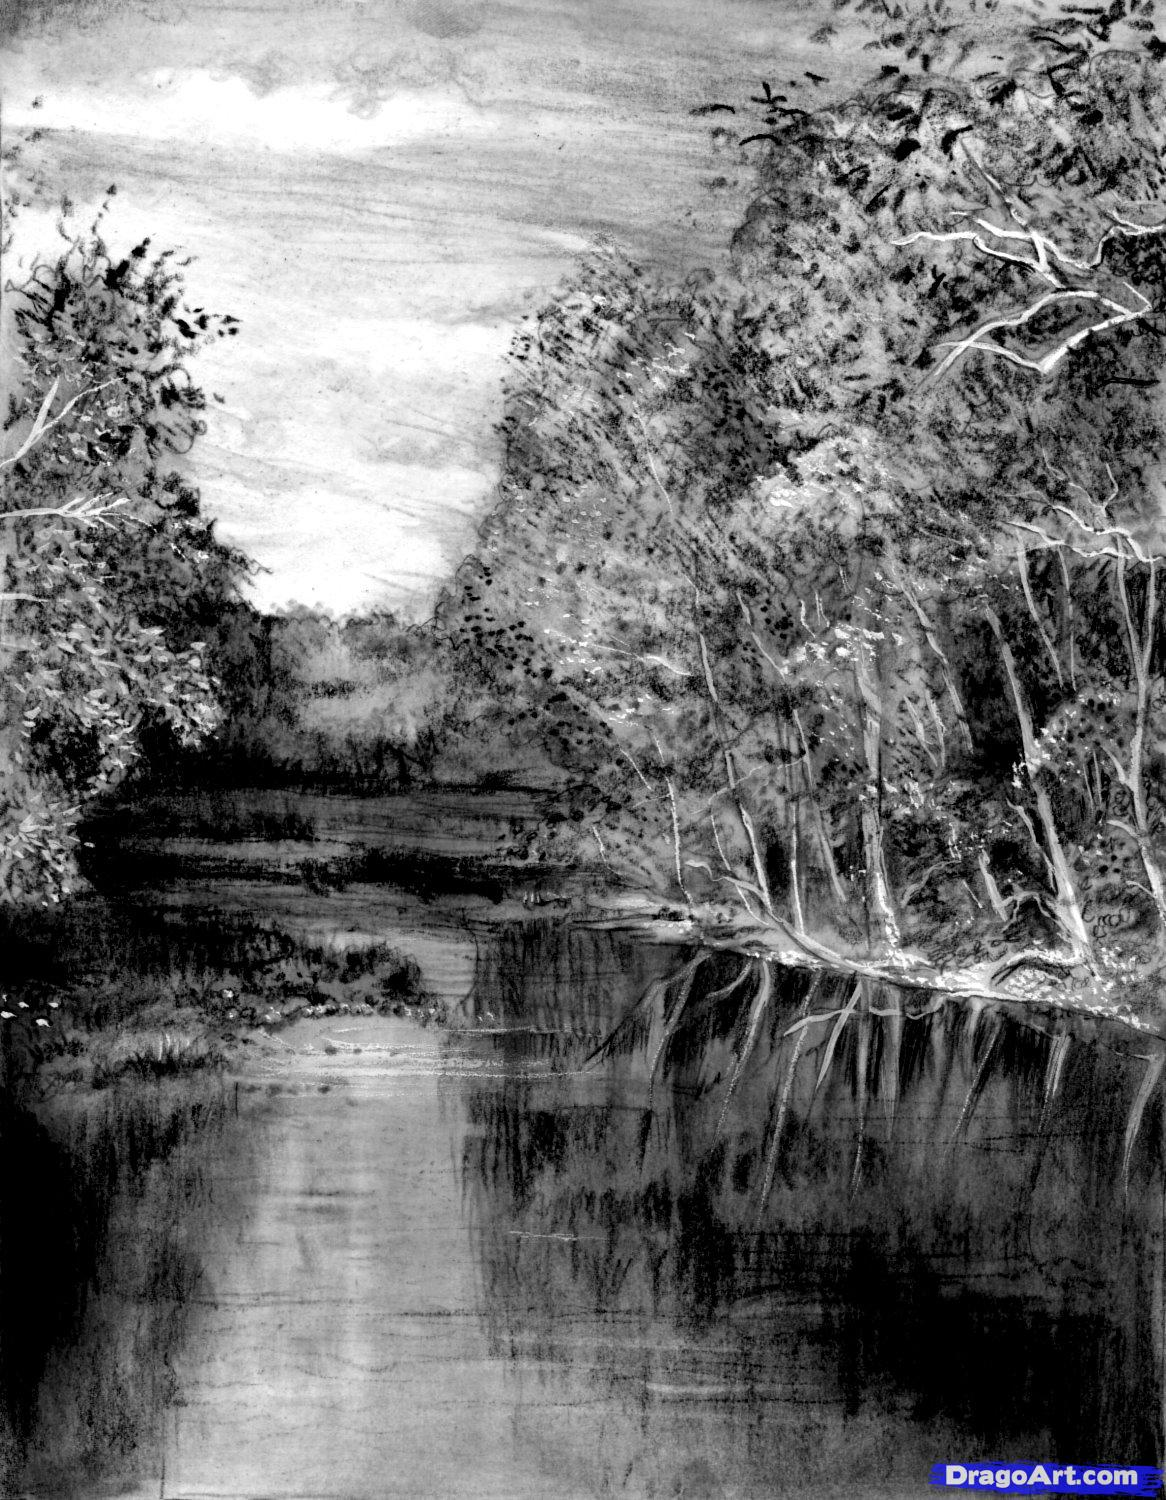 Drawn river pencil drawing How river realistic Realistic a